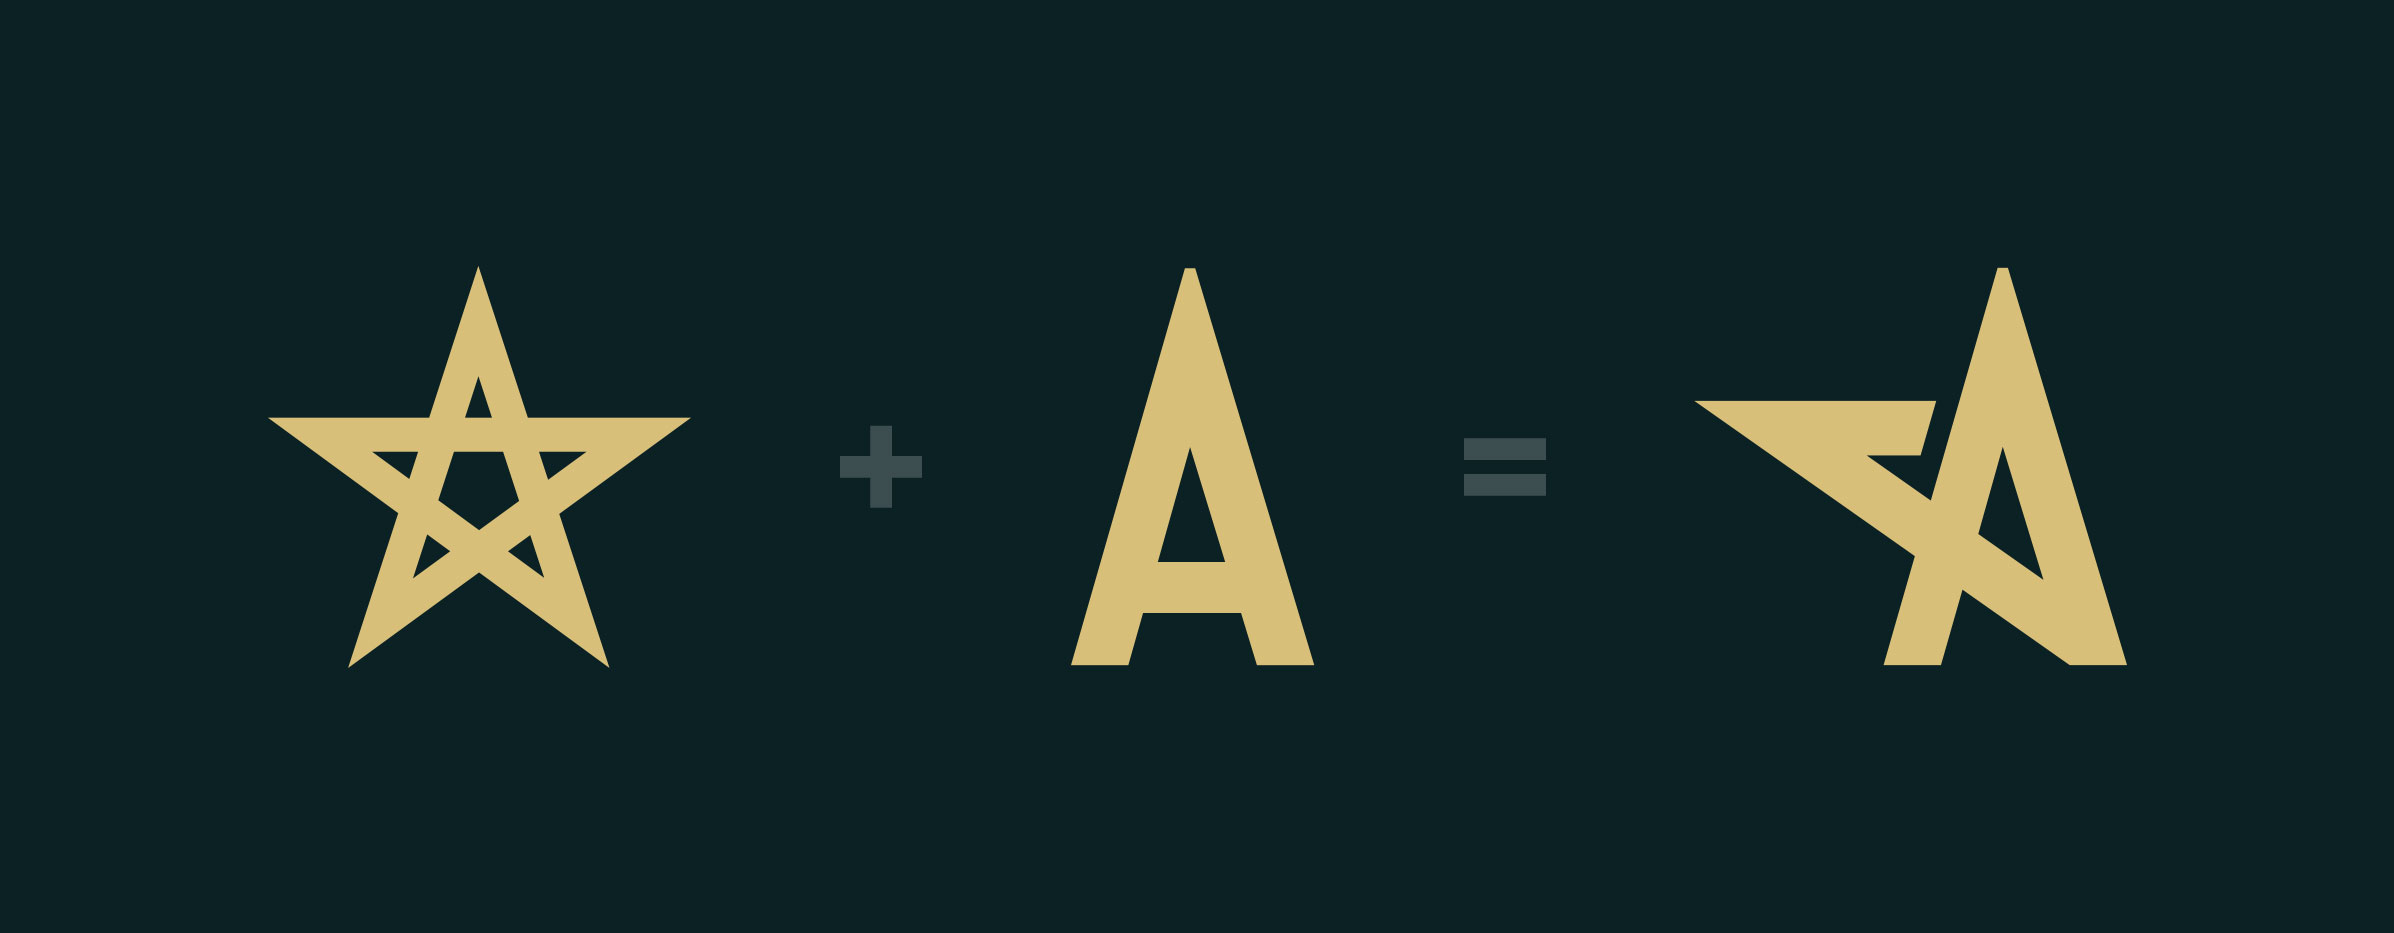 Progression of a star logo for the letter a